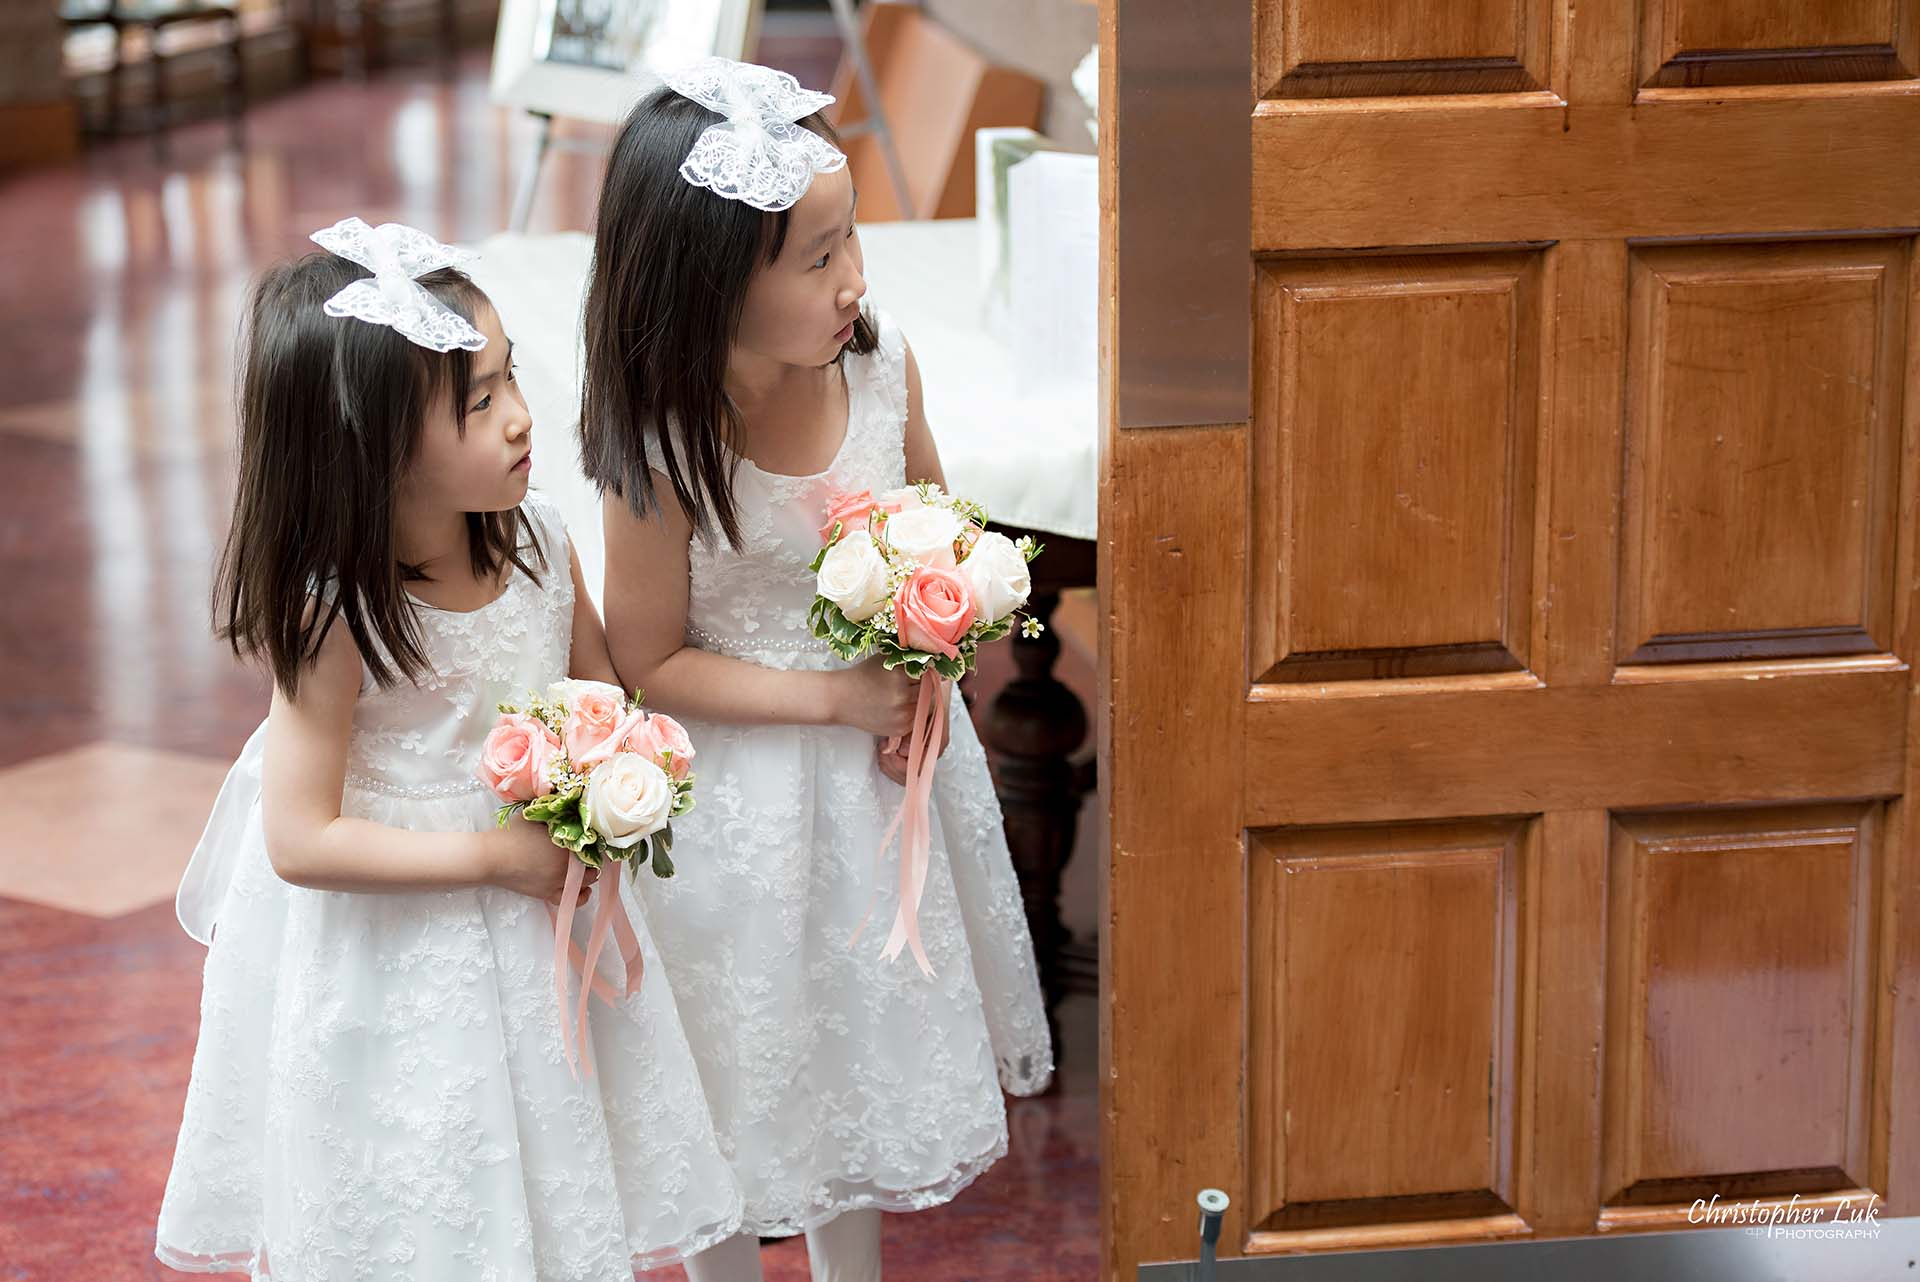 Christopher Luk Toronto Wedding Photographer Trinity York Mills Church Ceremony Sanctuary Candid Natural Photojournalistic Flower Girls